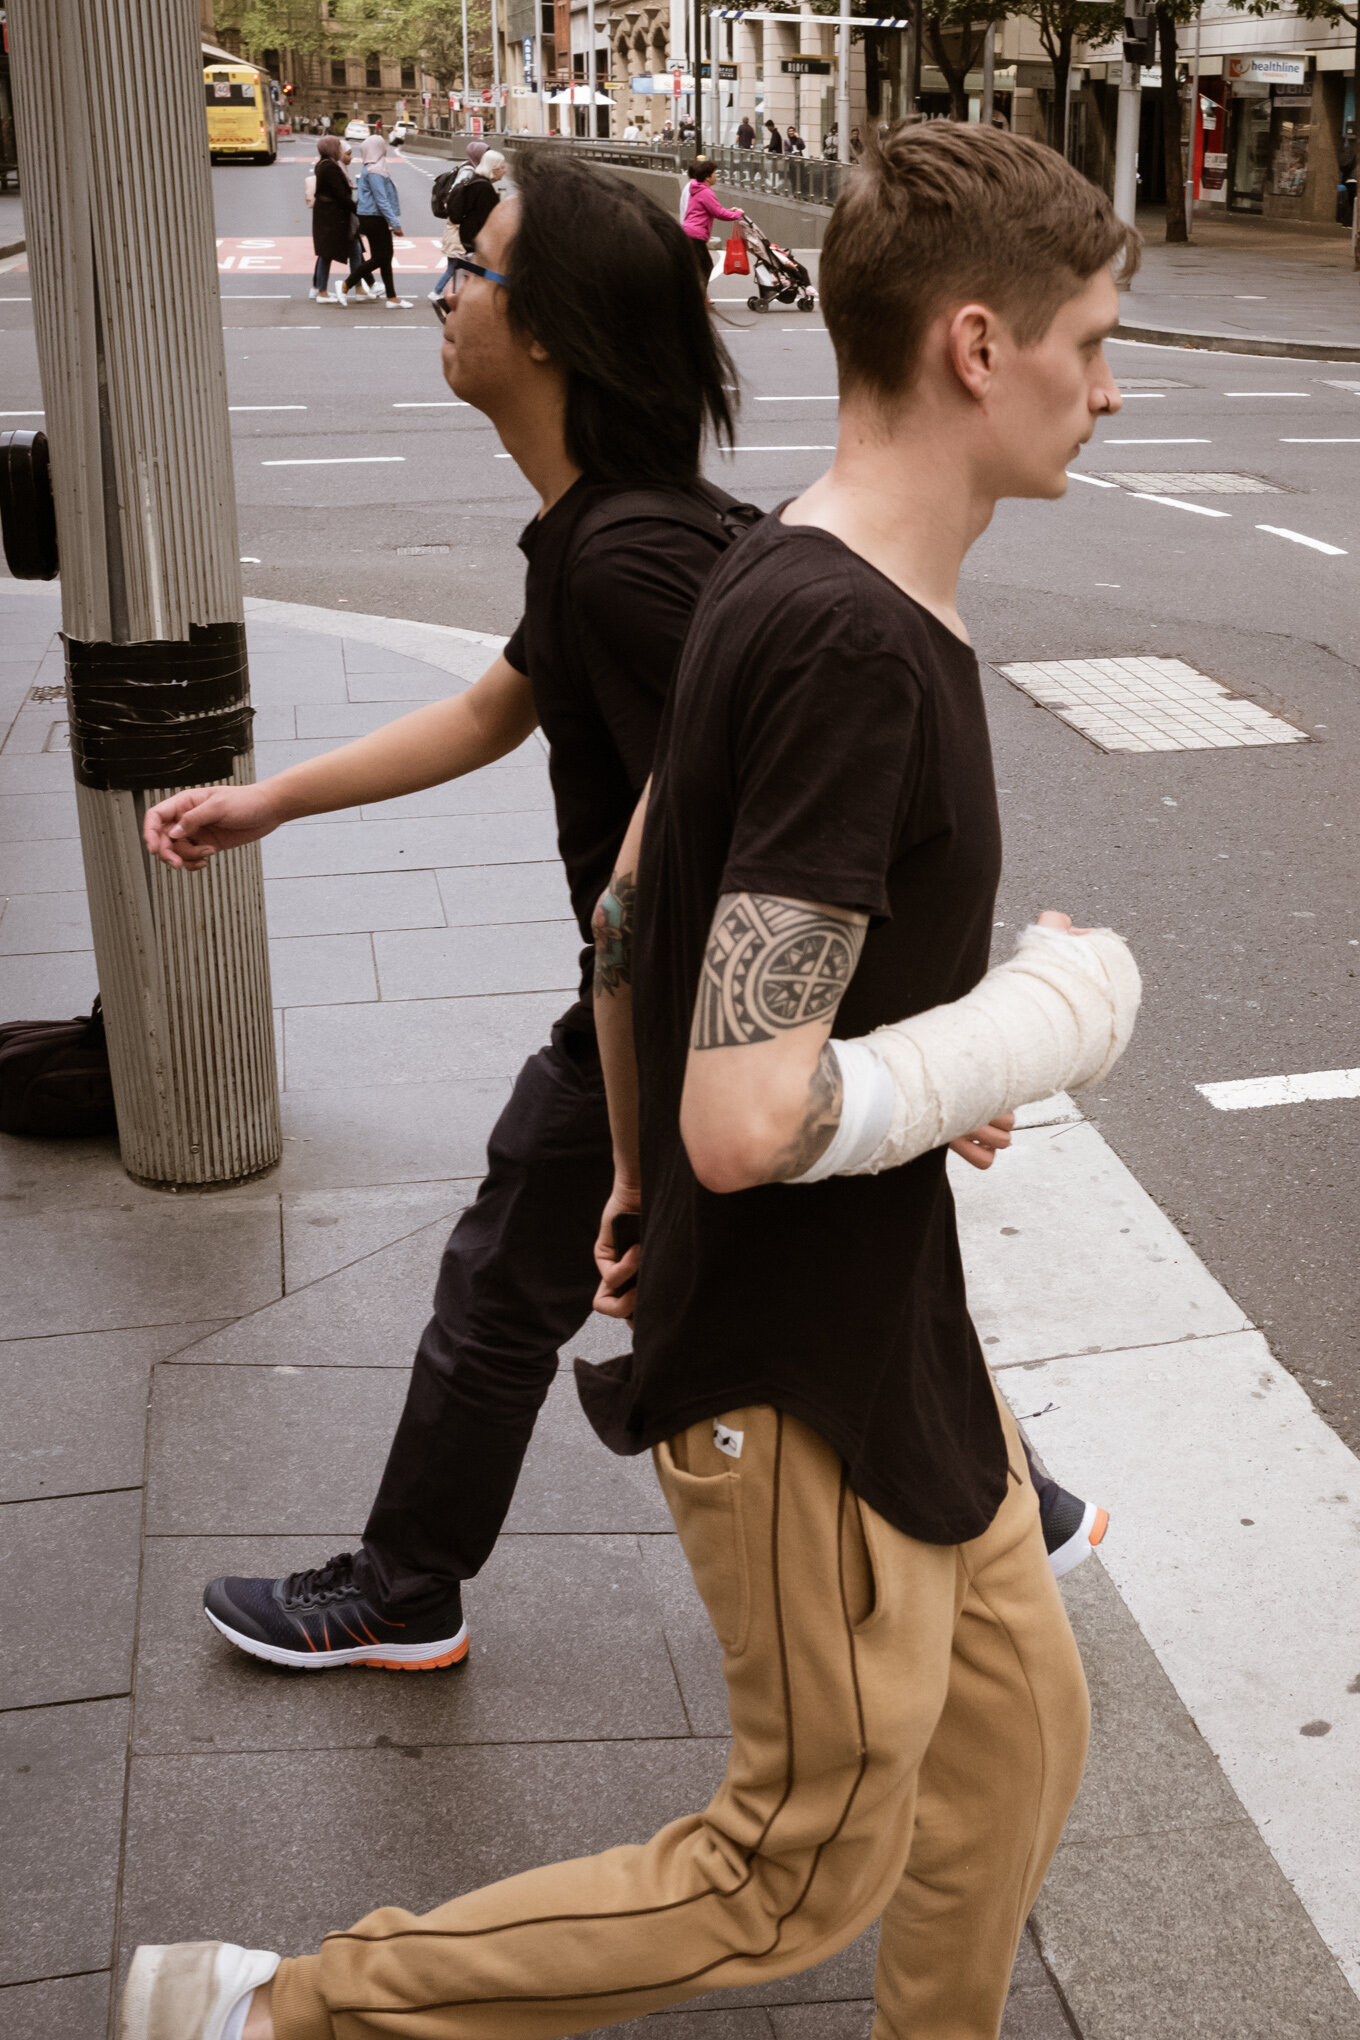 Wounded-401.jpg